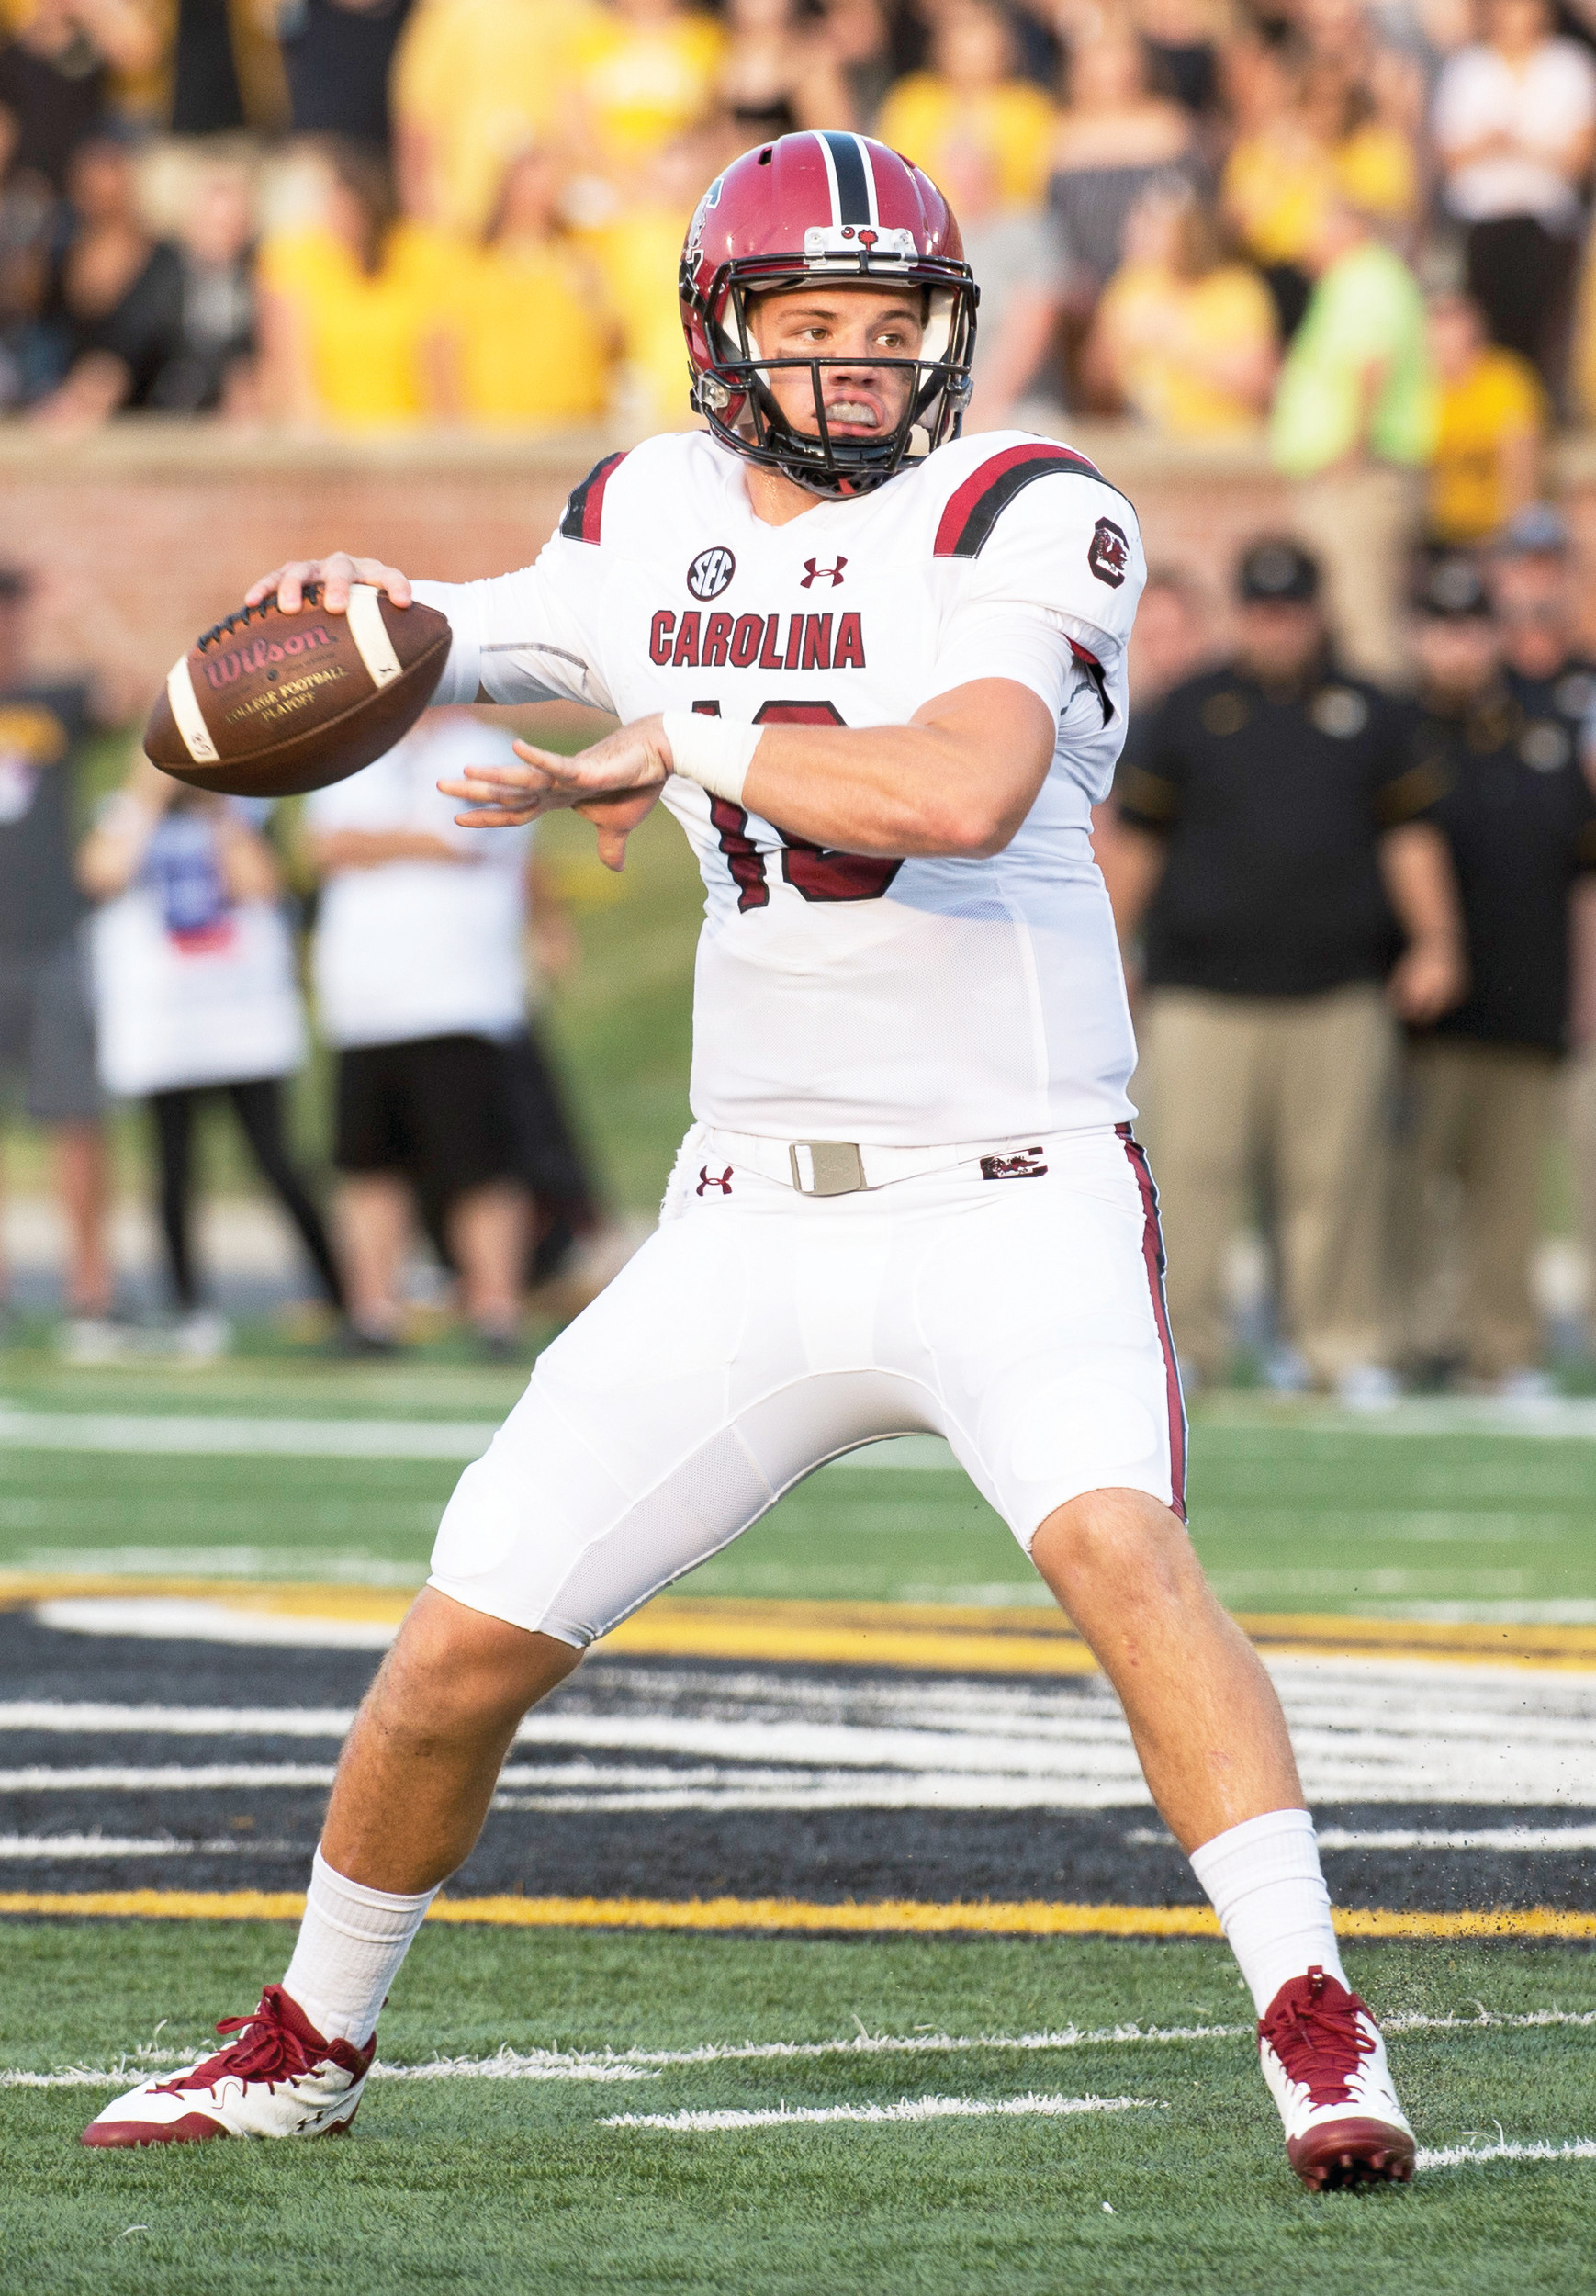 South Carolina quarterback Jake Bentley gets set to throw during the Gamecocks' 31-13 victory on Saturday in Columbia, Missouri.